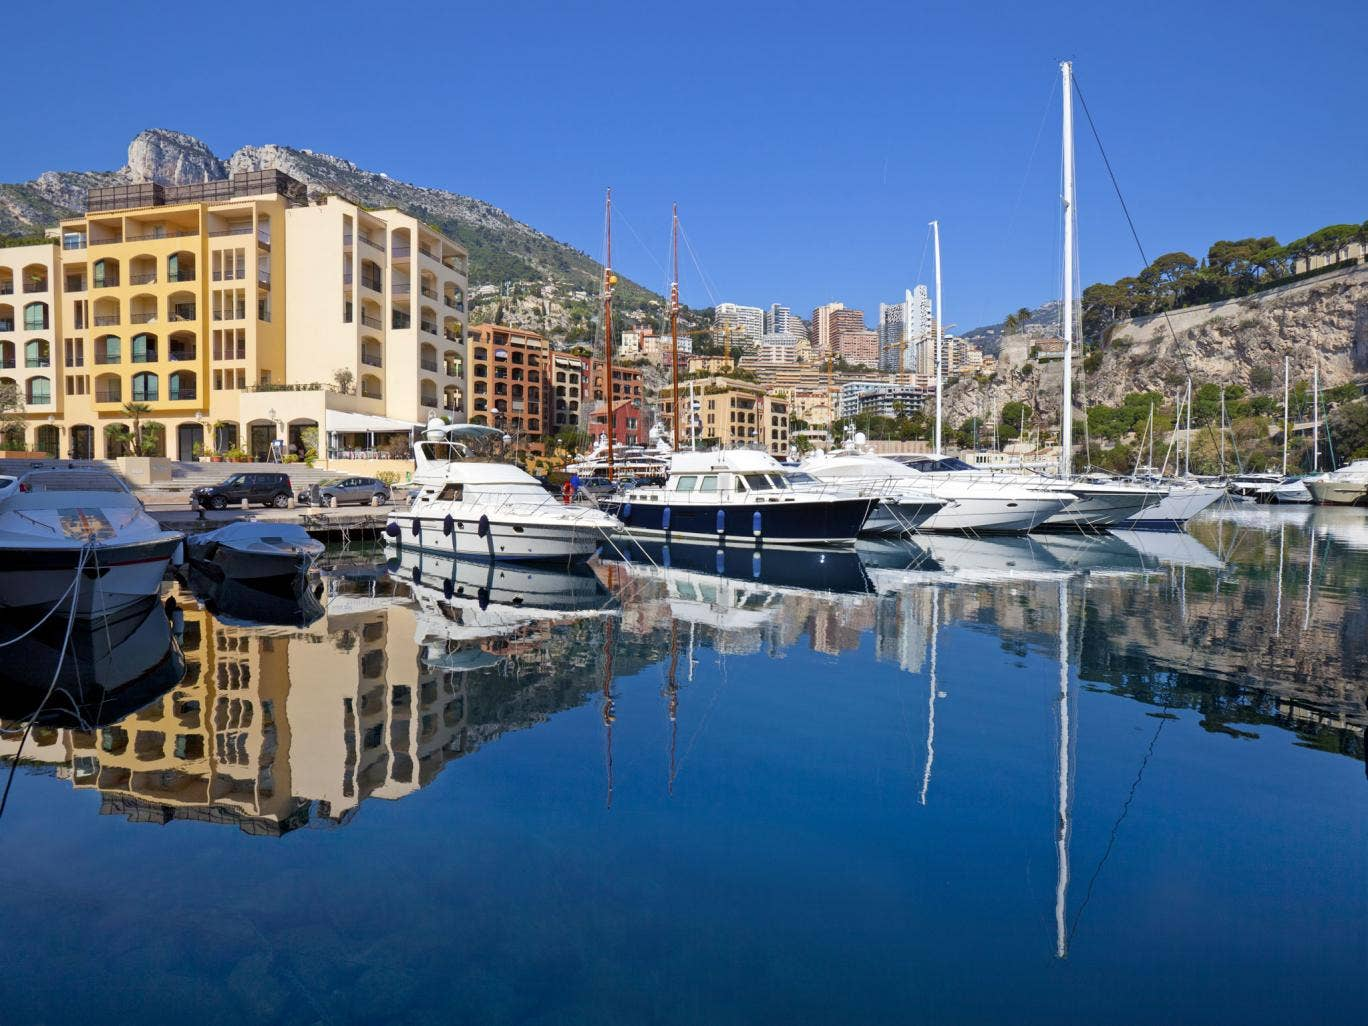 Luxury yachts and apartment buildings reflected in the calm waters of Fontvieille harbor, Monaco